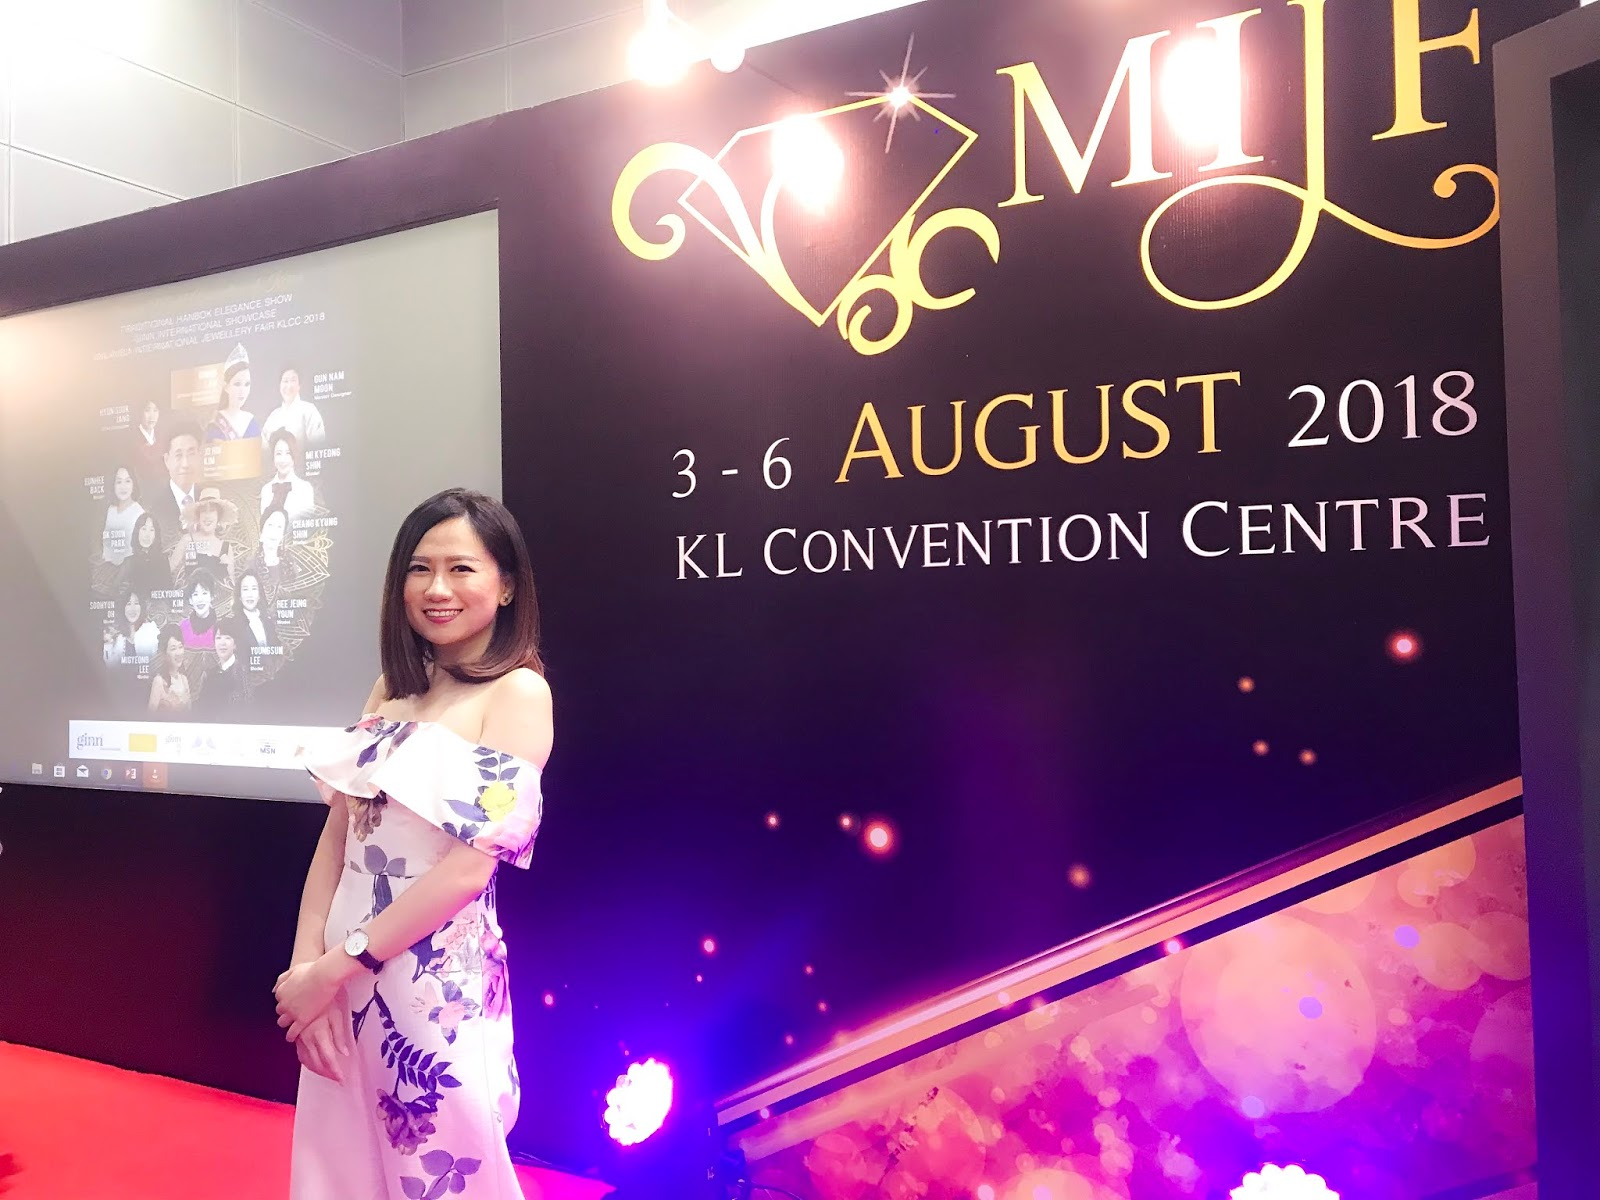 [Event] Ginn International Showcase 2018 @ Malaysia International Jewellery Fair, KLCC